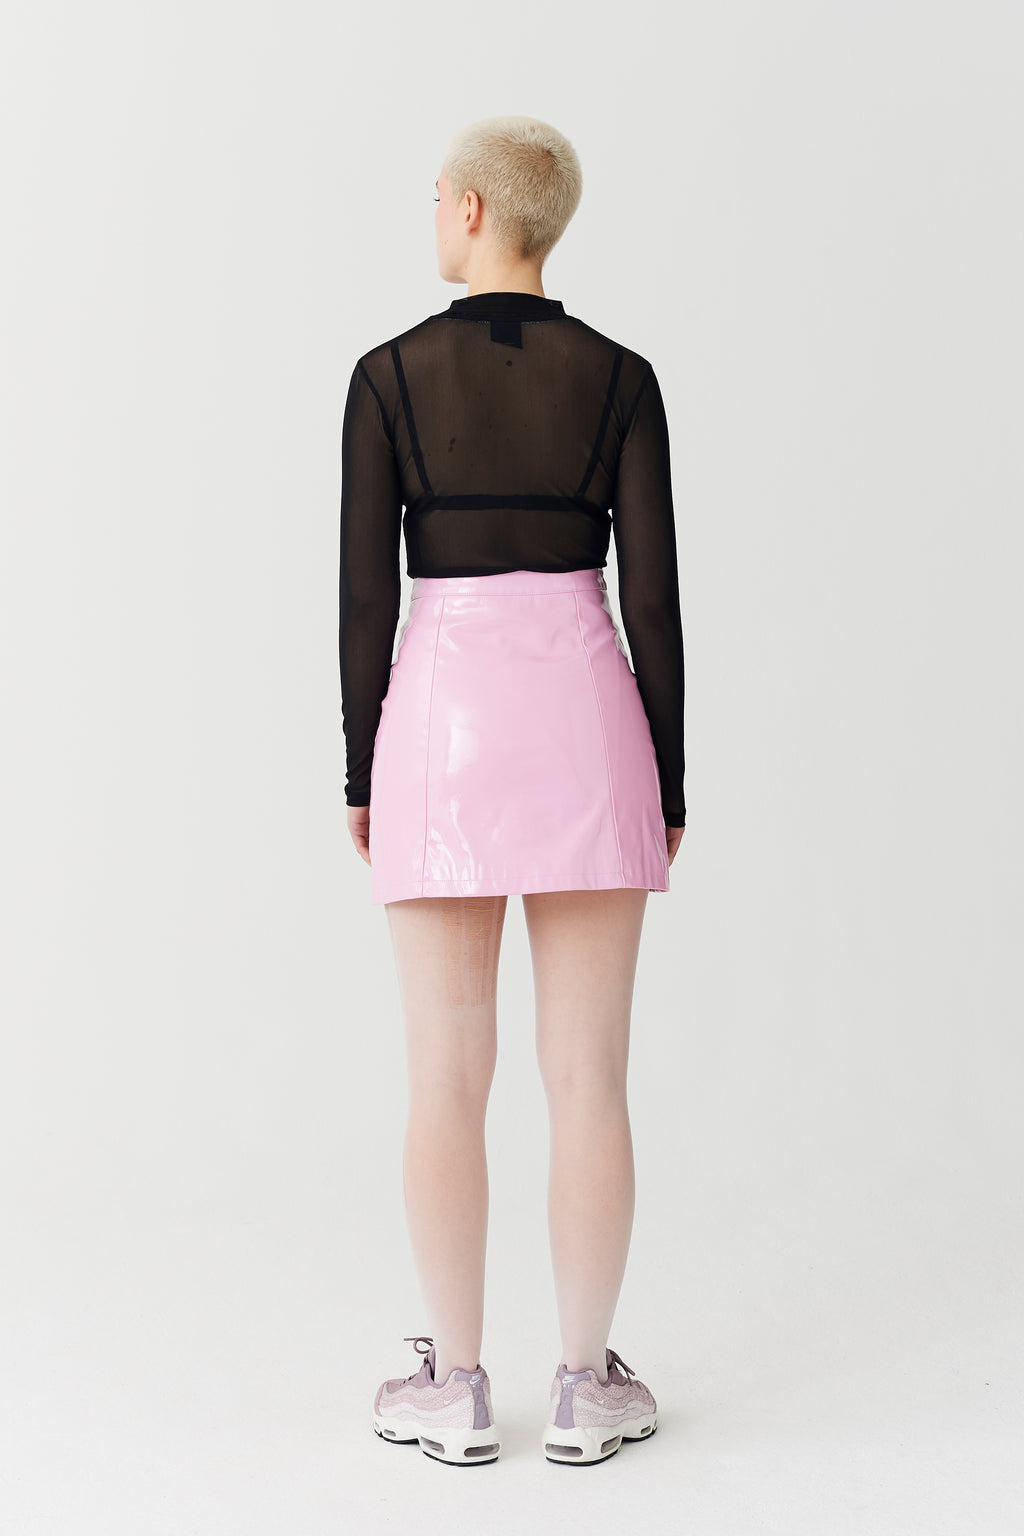 Esther Loves Oaf Vinyl Bunny Skirt